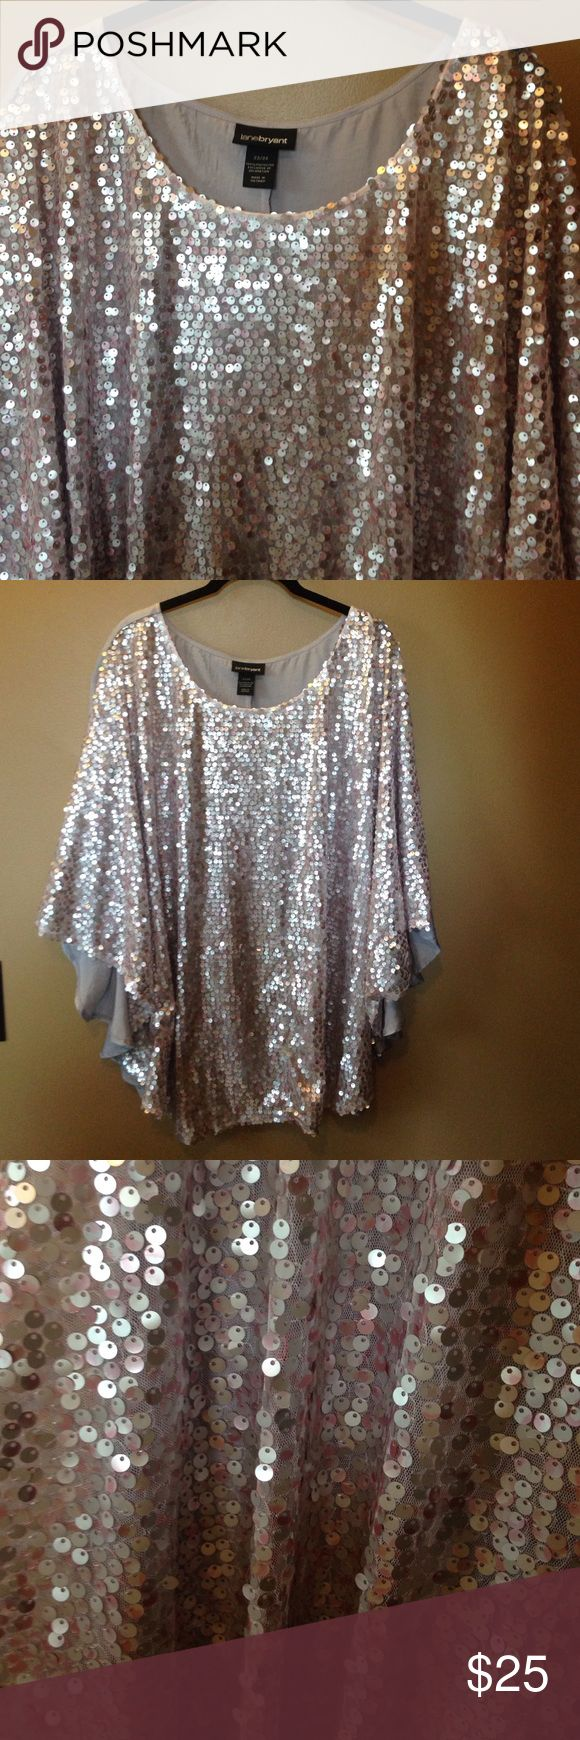 Lane Bryant Sequin Batwing Top You've found your holiday outfit! . Beautiful and comfortable.  Chiffon back, Batwing style, with beautiful sequined front.  The top photographs on the silver side but is more of a light lavender.  This is a reposh I bought this for myself to go with fun leggings but it was too big.  The Batwing style gives a nice oversized comfortable look.  I only tried it on.  It shows very little if any Wear!  Size 22/24 Lane Bryant Tops Blouses